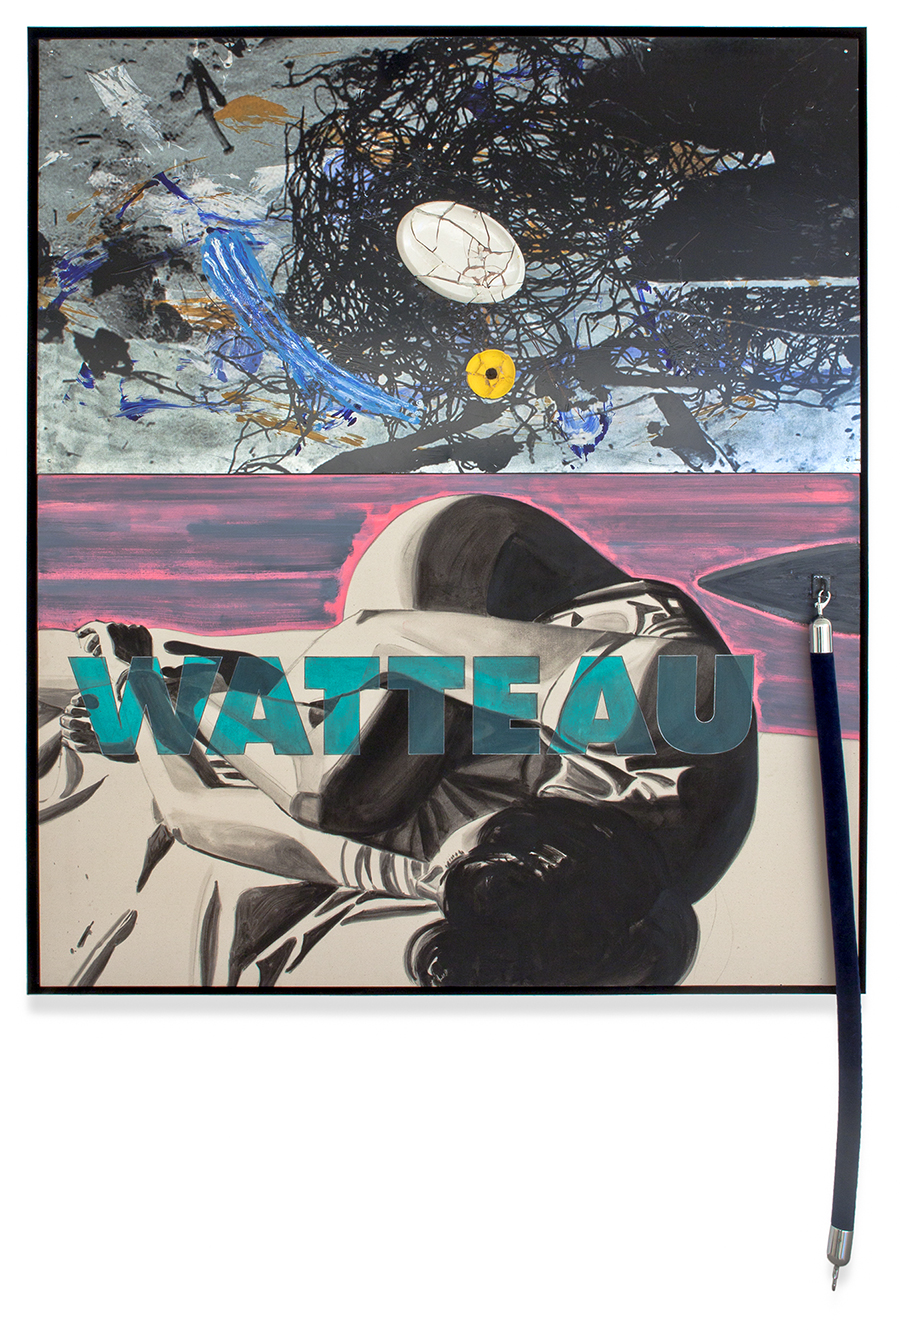 David Salle, Watteau, 2013, acrílica e serigrafia em metal com cerâmica vidrada e pintada, óleo sobre tela com corda de veludo | acrylic and silkscreen on metal, ceramics, oil on canvas and velvet rope, 188 x 163 cm